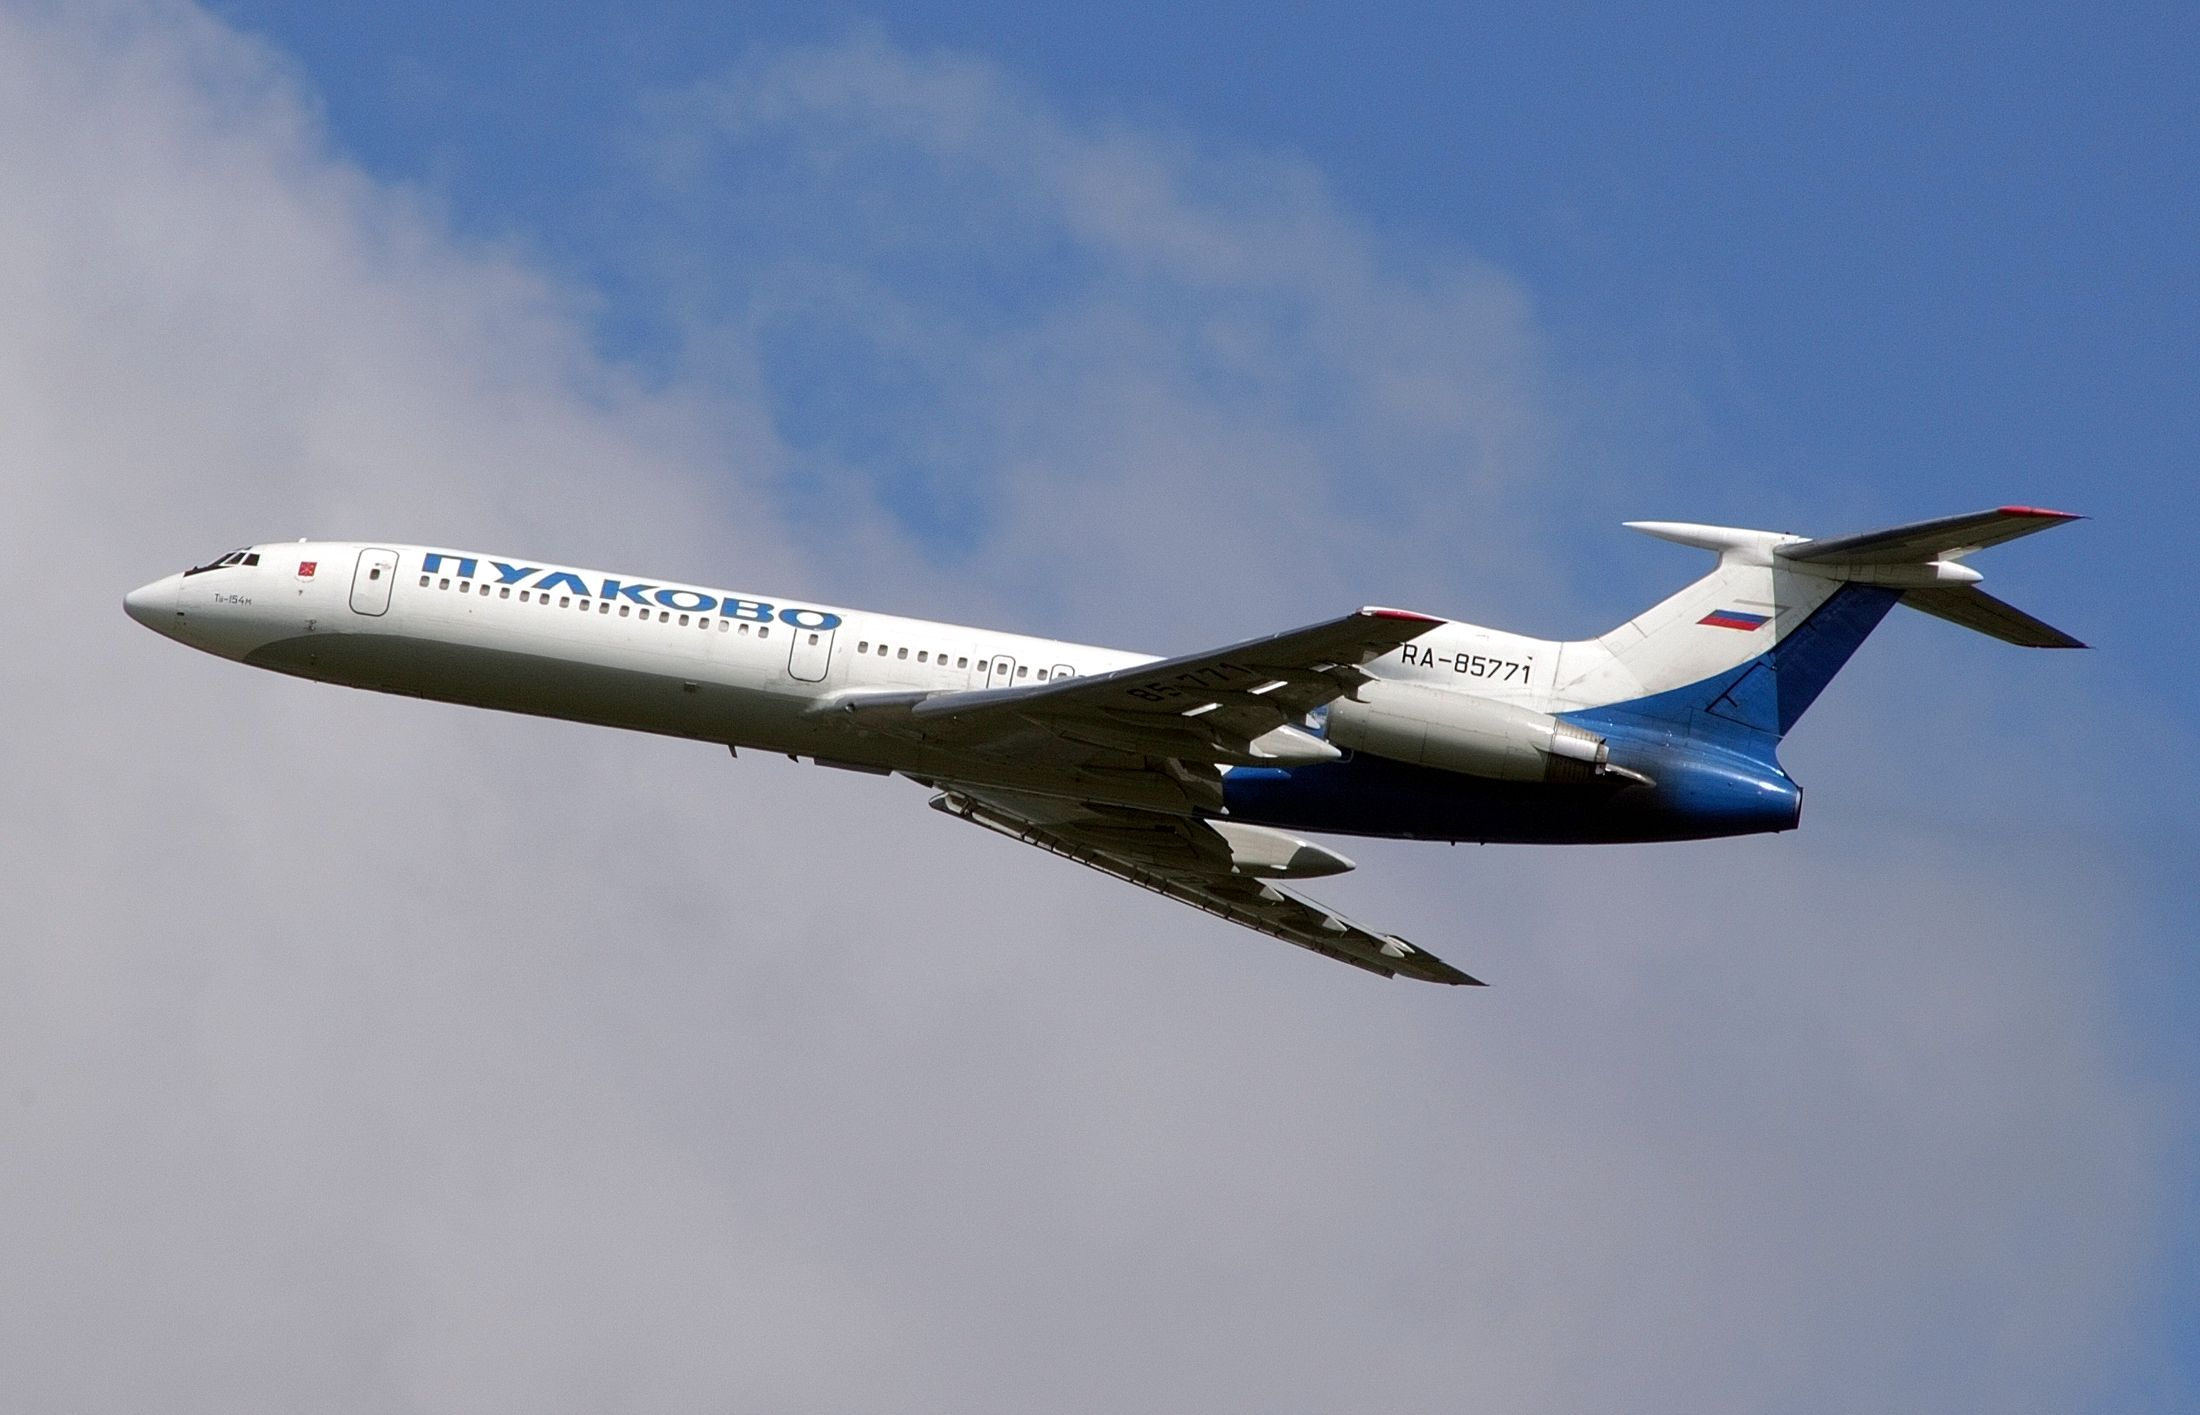 Russian Military Plane Flies Over U S For Spy Mission Canada Is Next As Part Of The Treaty On Open Skies Signed By 34 Nations Spy Plane Aircraft Military